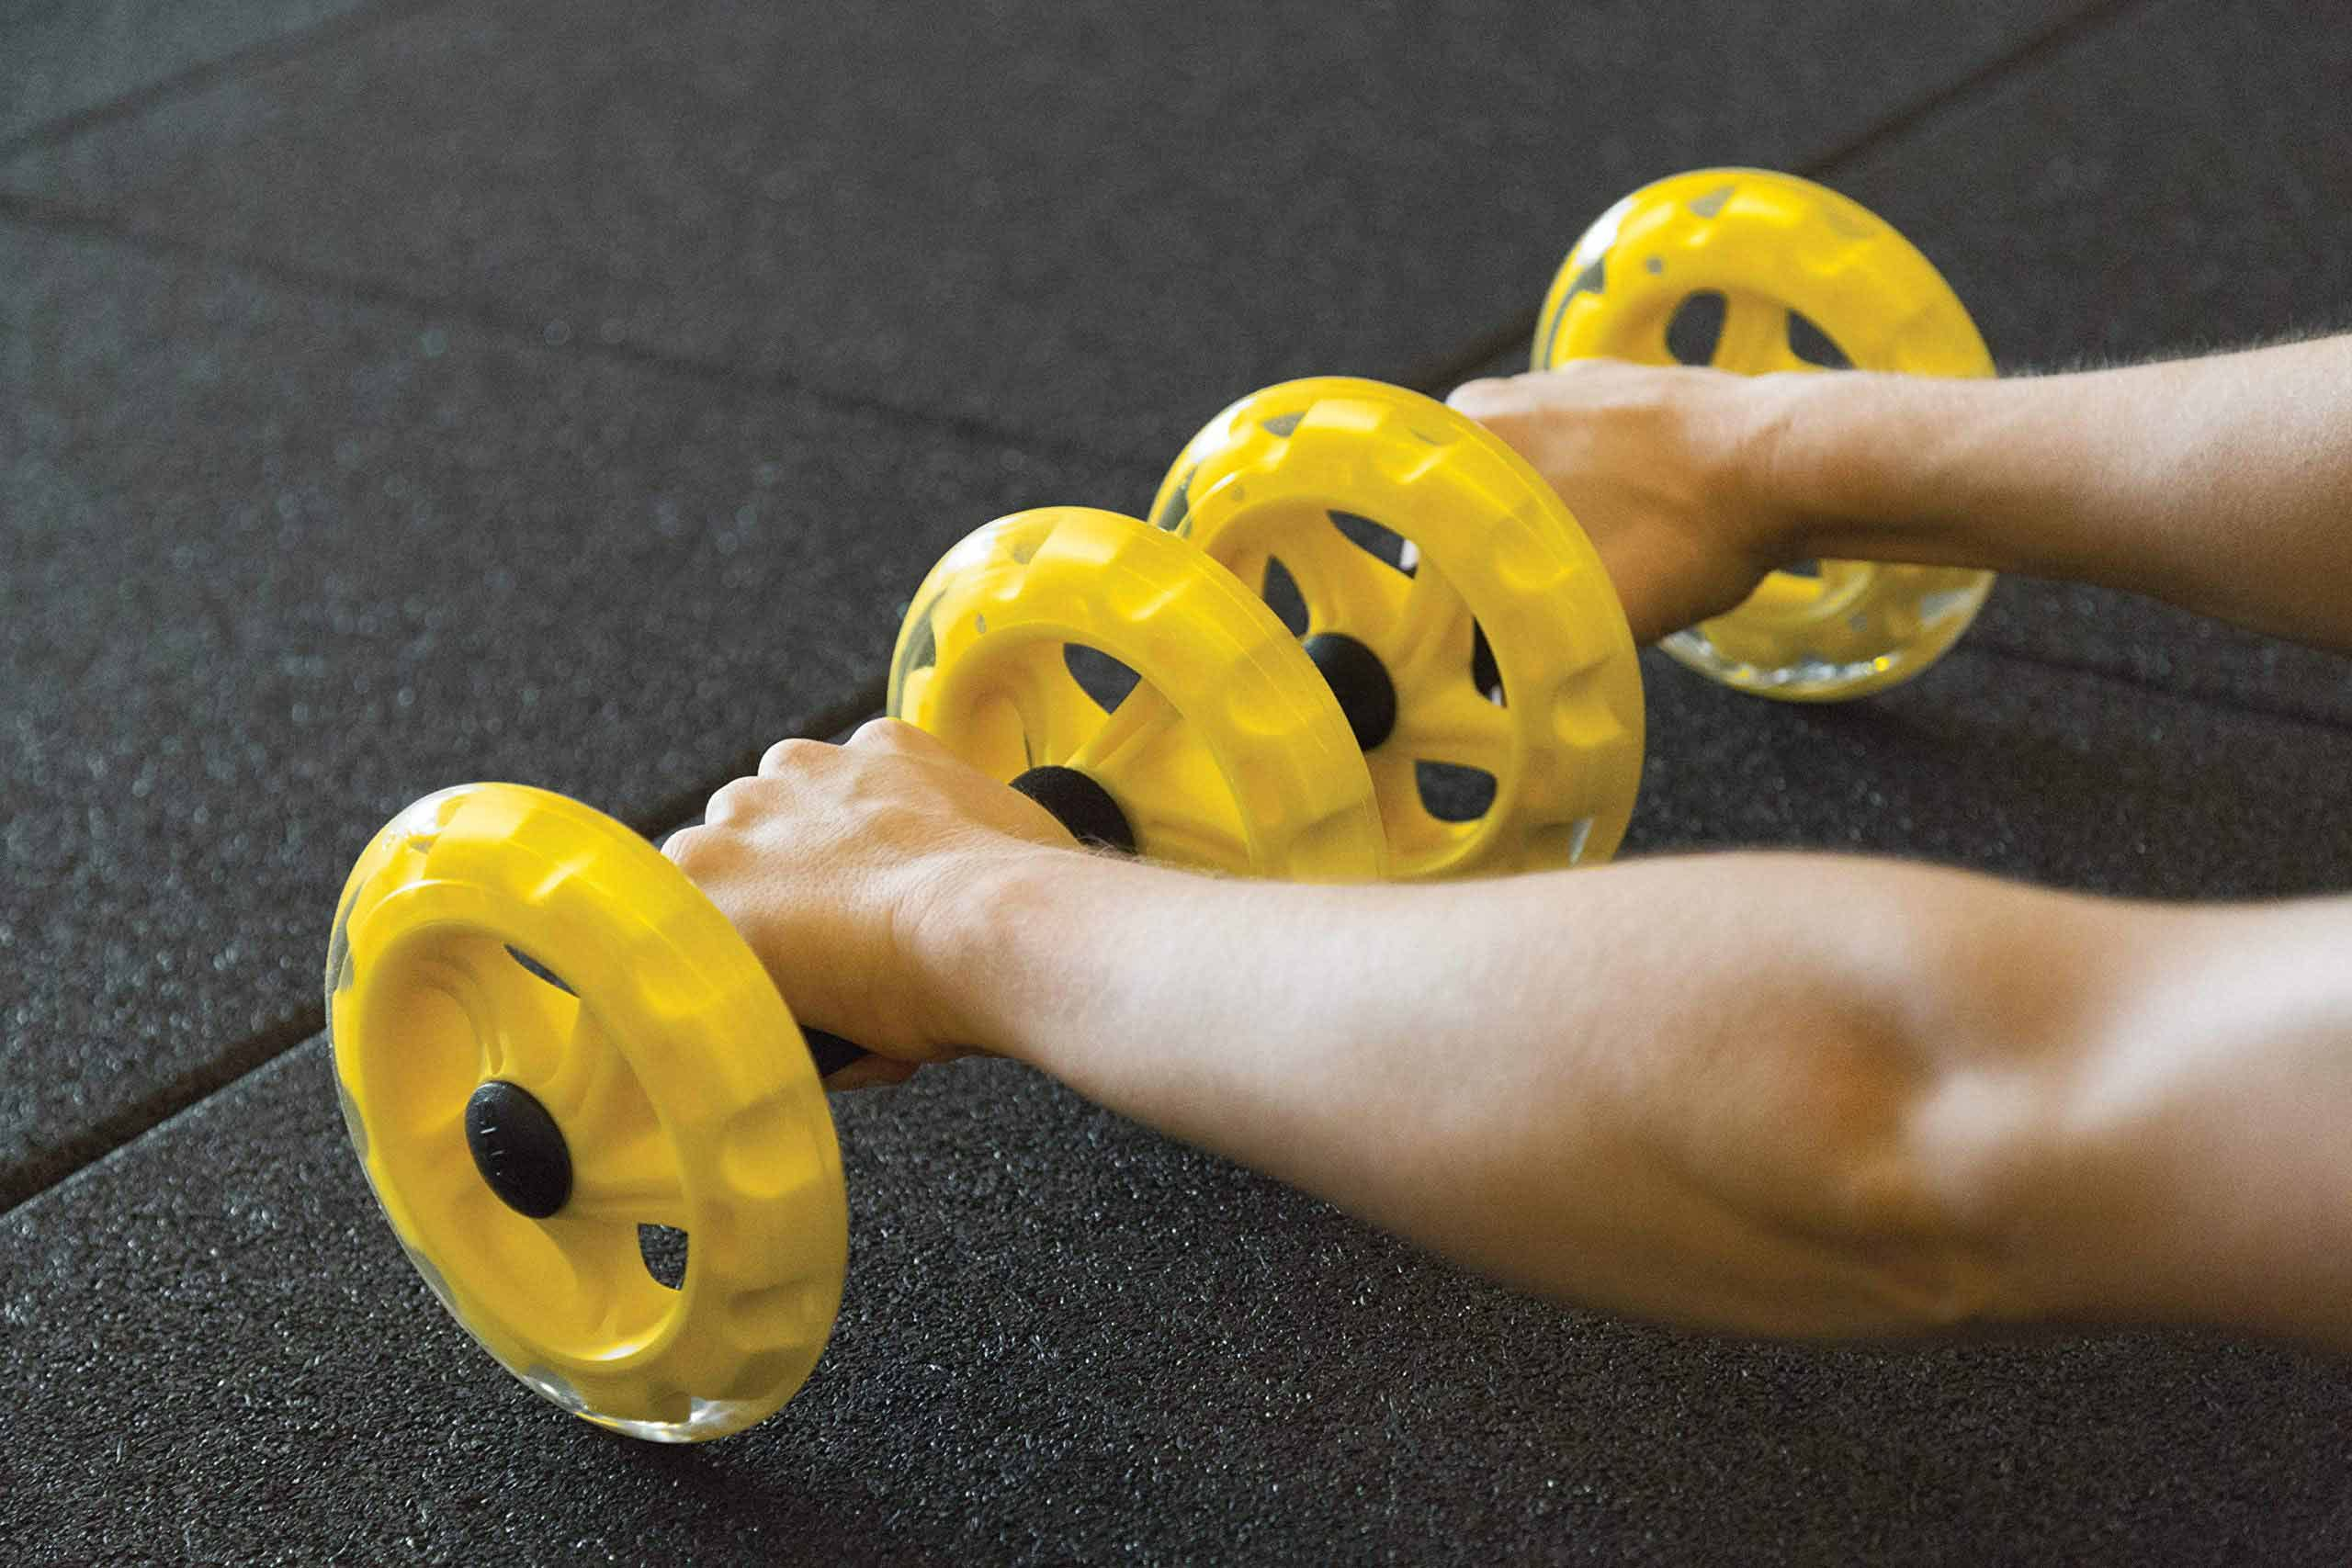 SKLZ core wheels abdominal exercise tools.